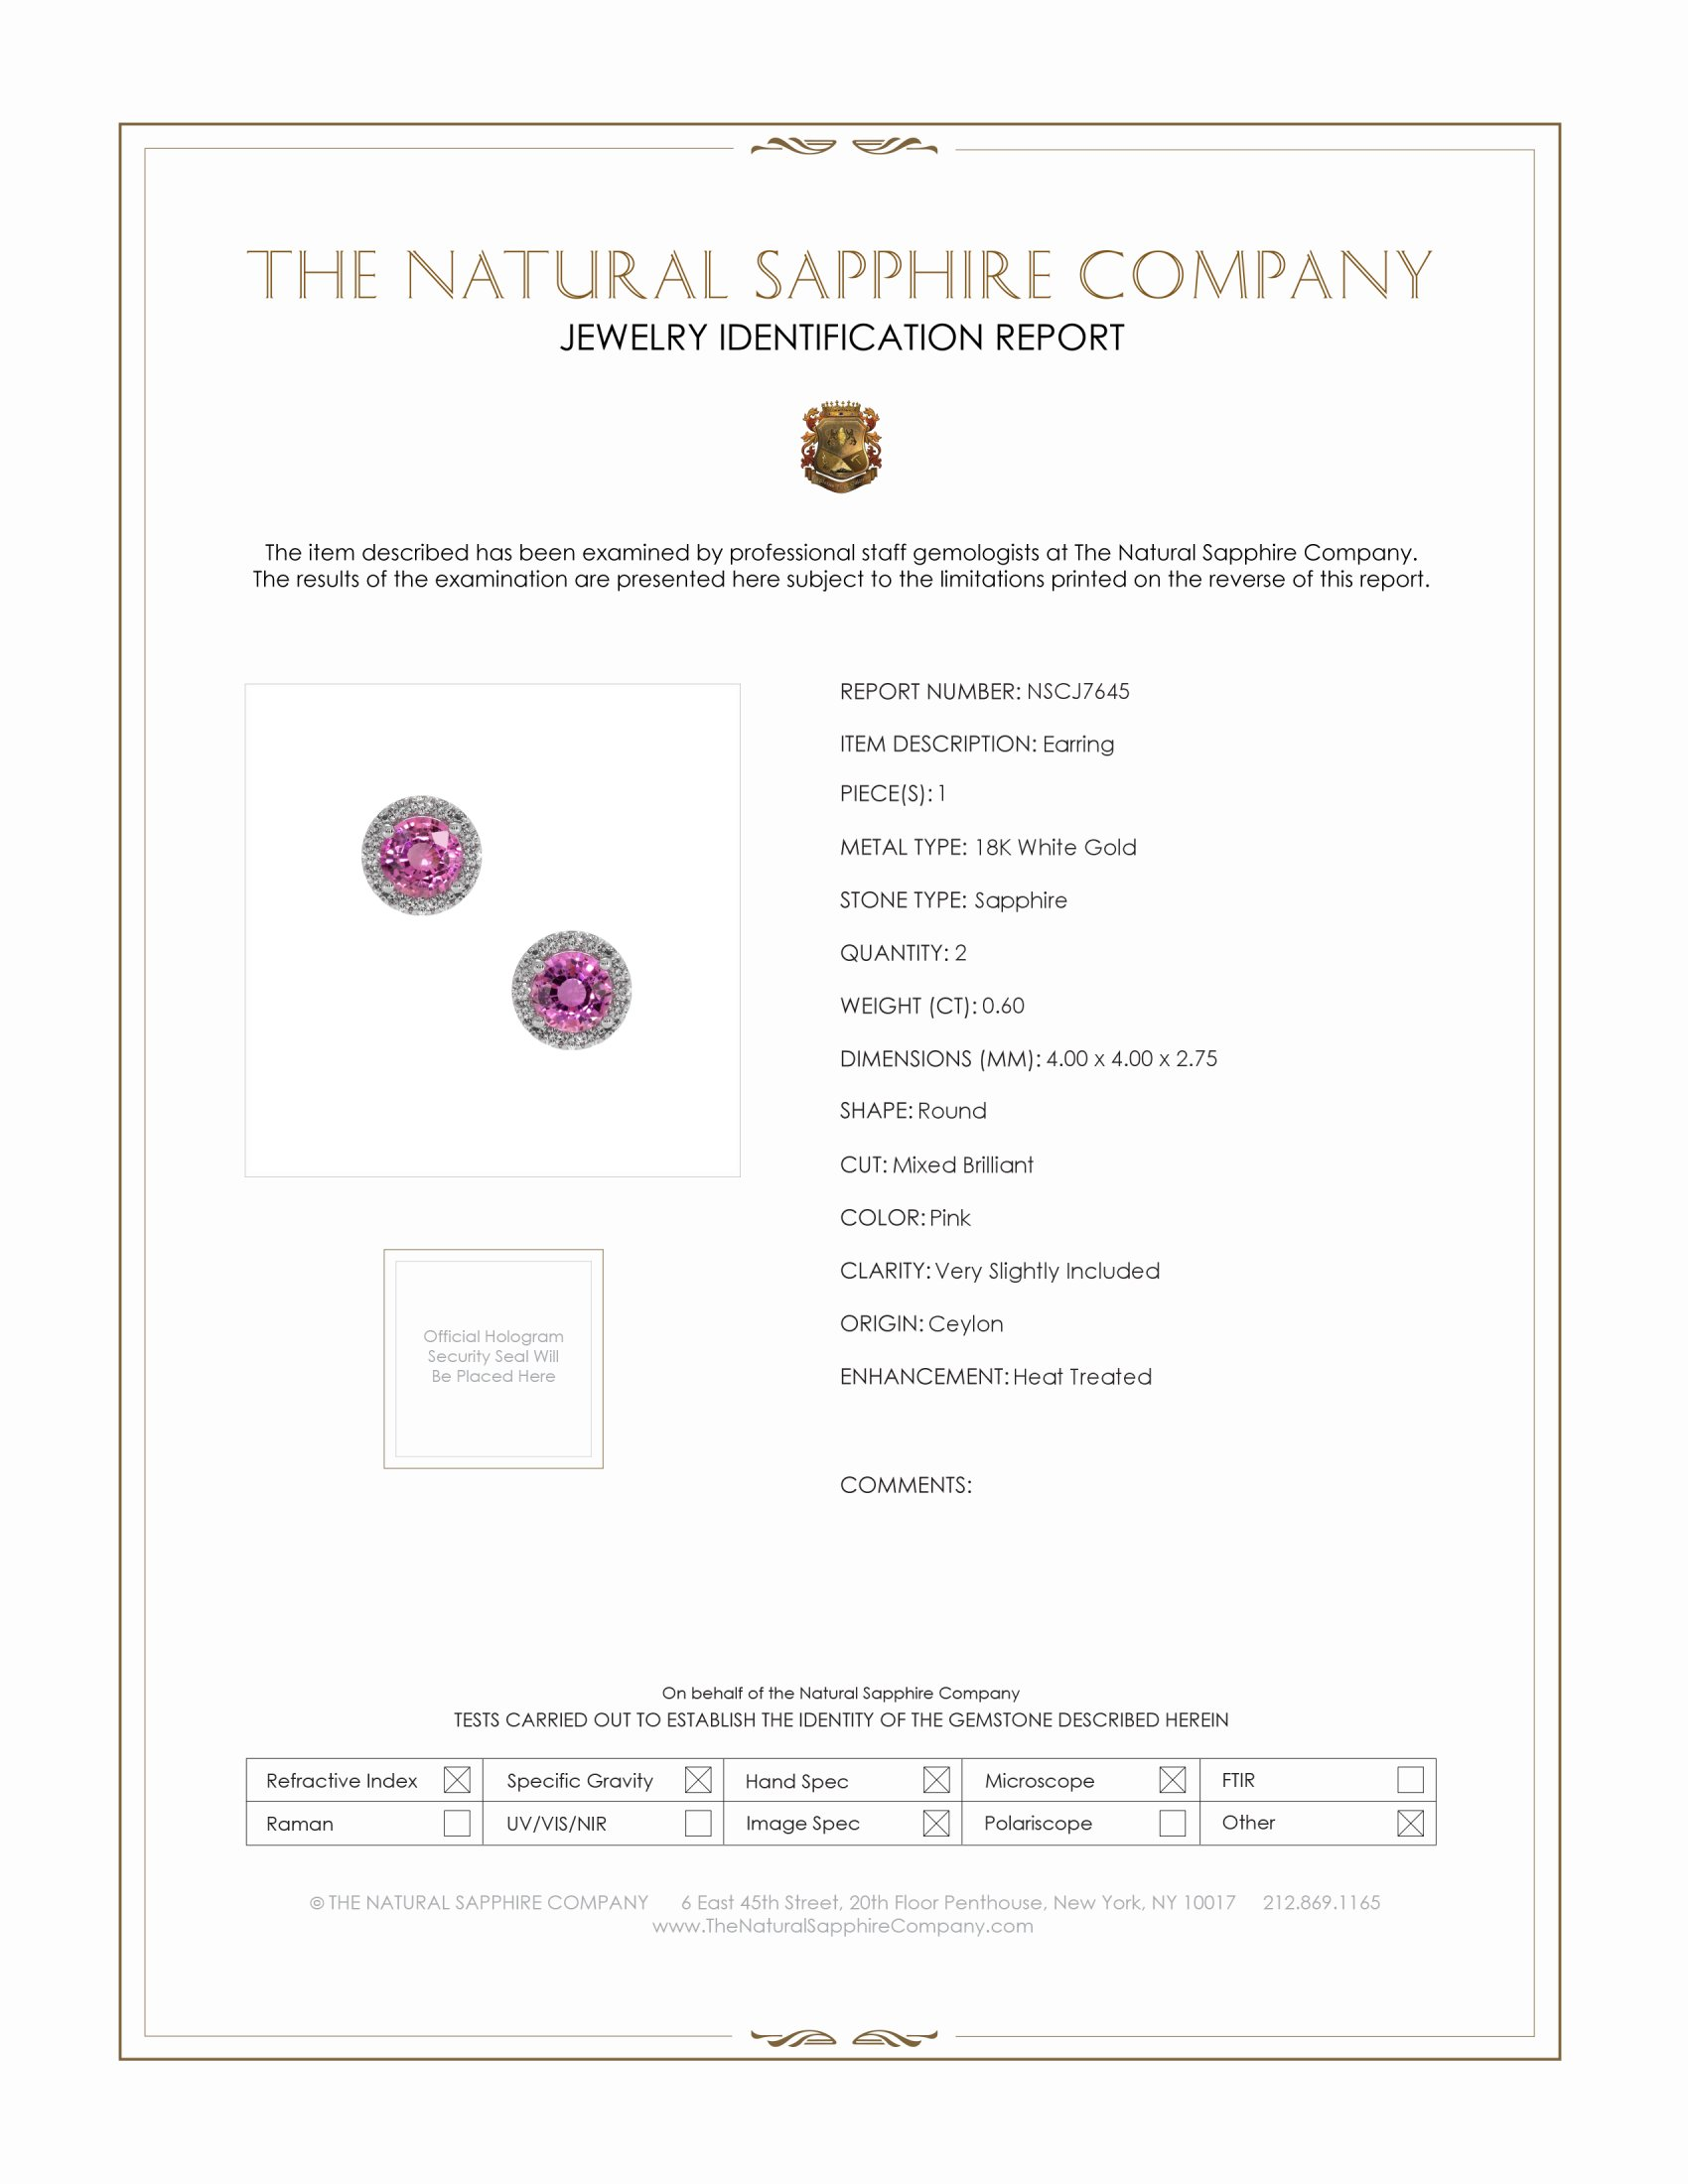 0.69ct Pink Sapphire Earring Certification